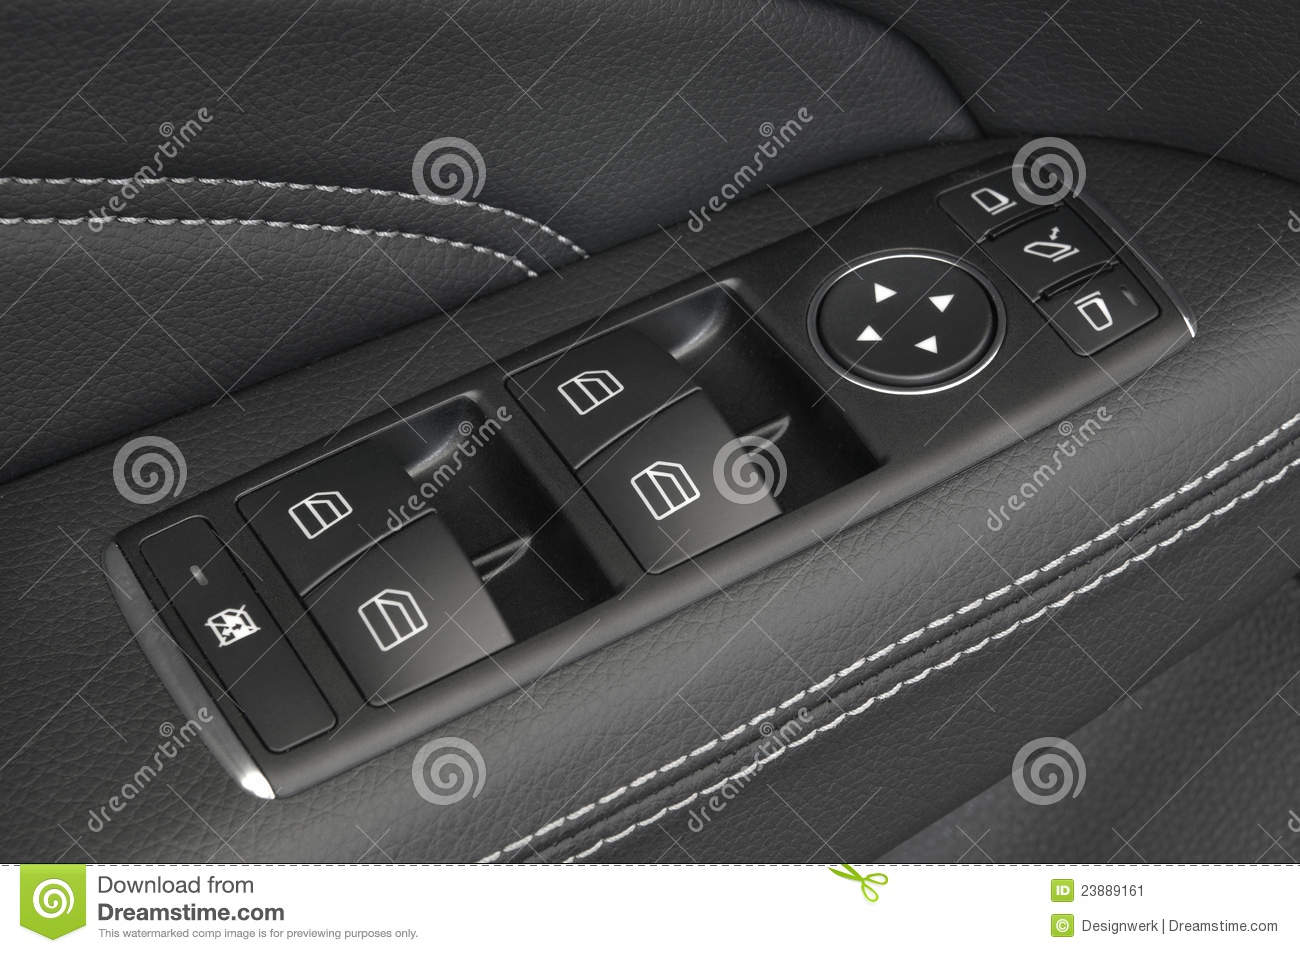 Royalty-Free Stock Photo & Close Up Of A Car Door Control Panel Buttons Stock Image - Image ... Pezcame.Com